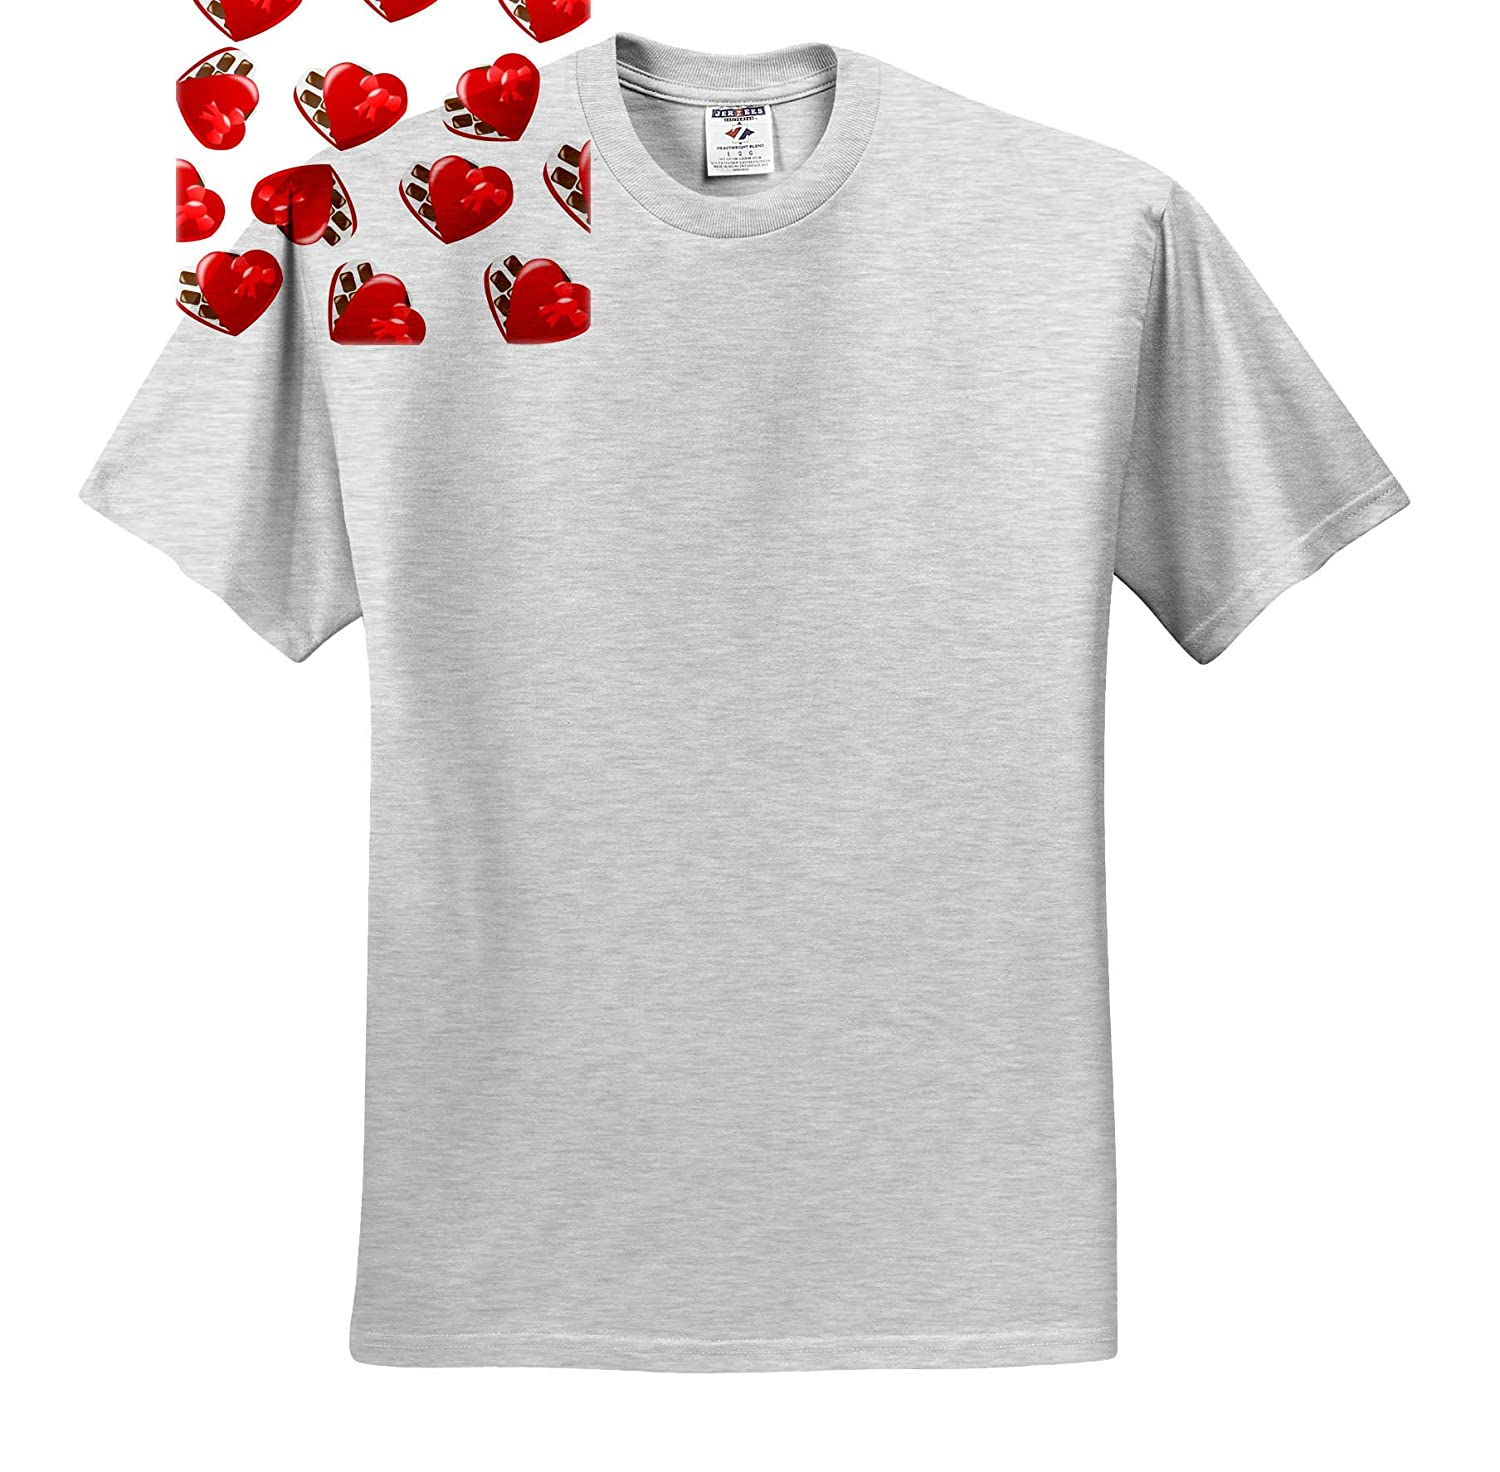 Toss Patterns 3dRose Lens Art by Florene Image of Valentine Hearts with Chocolates Repeat Pattern T-Shirts